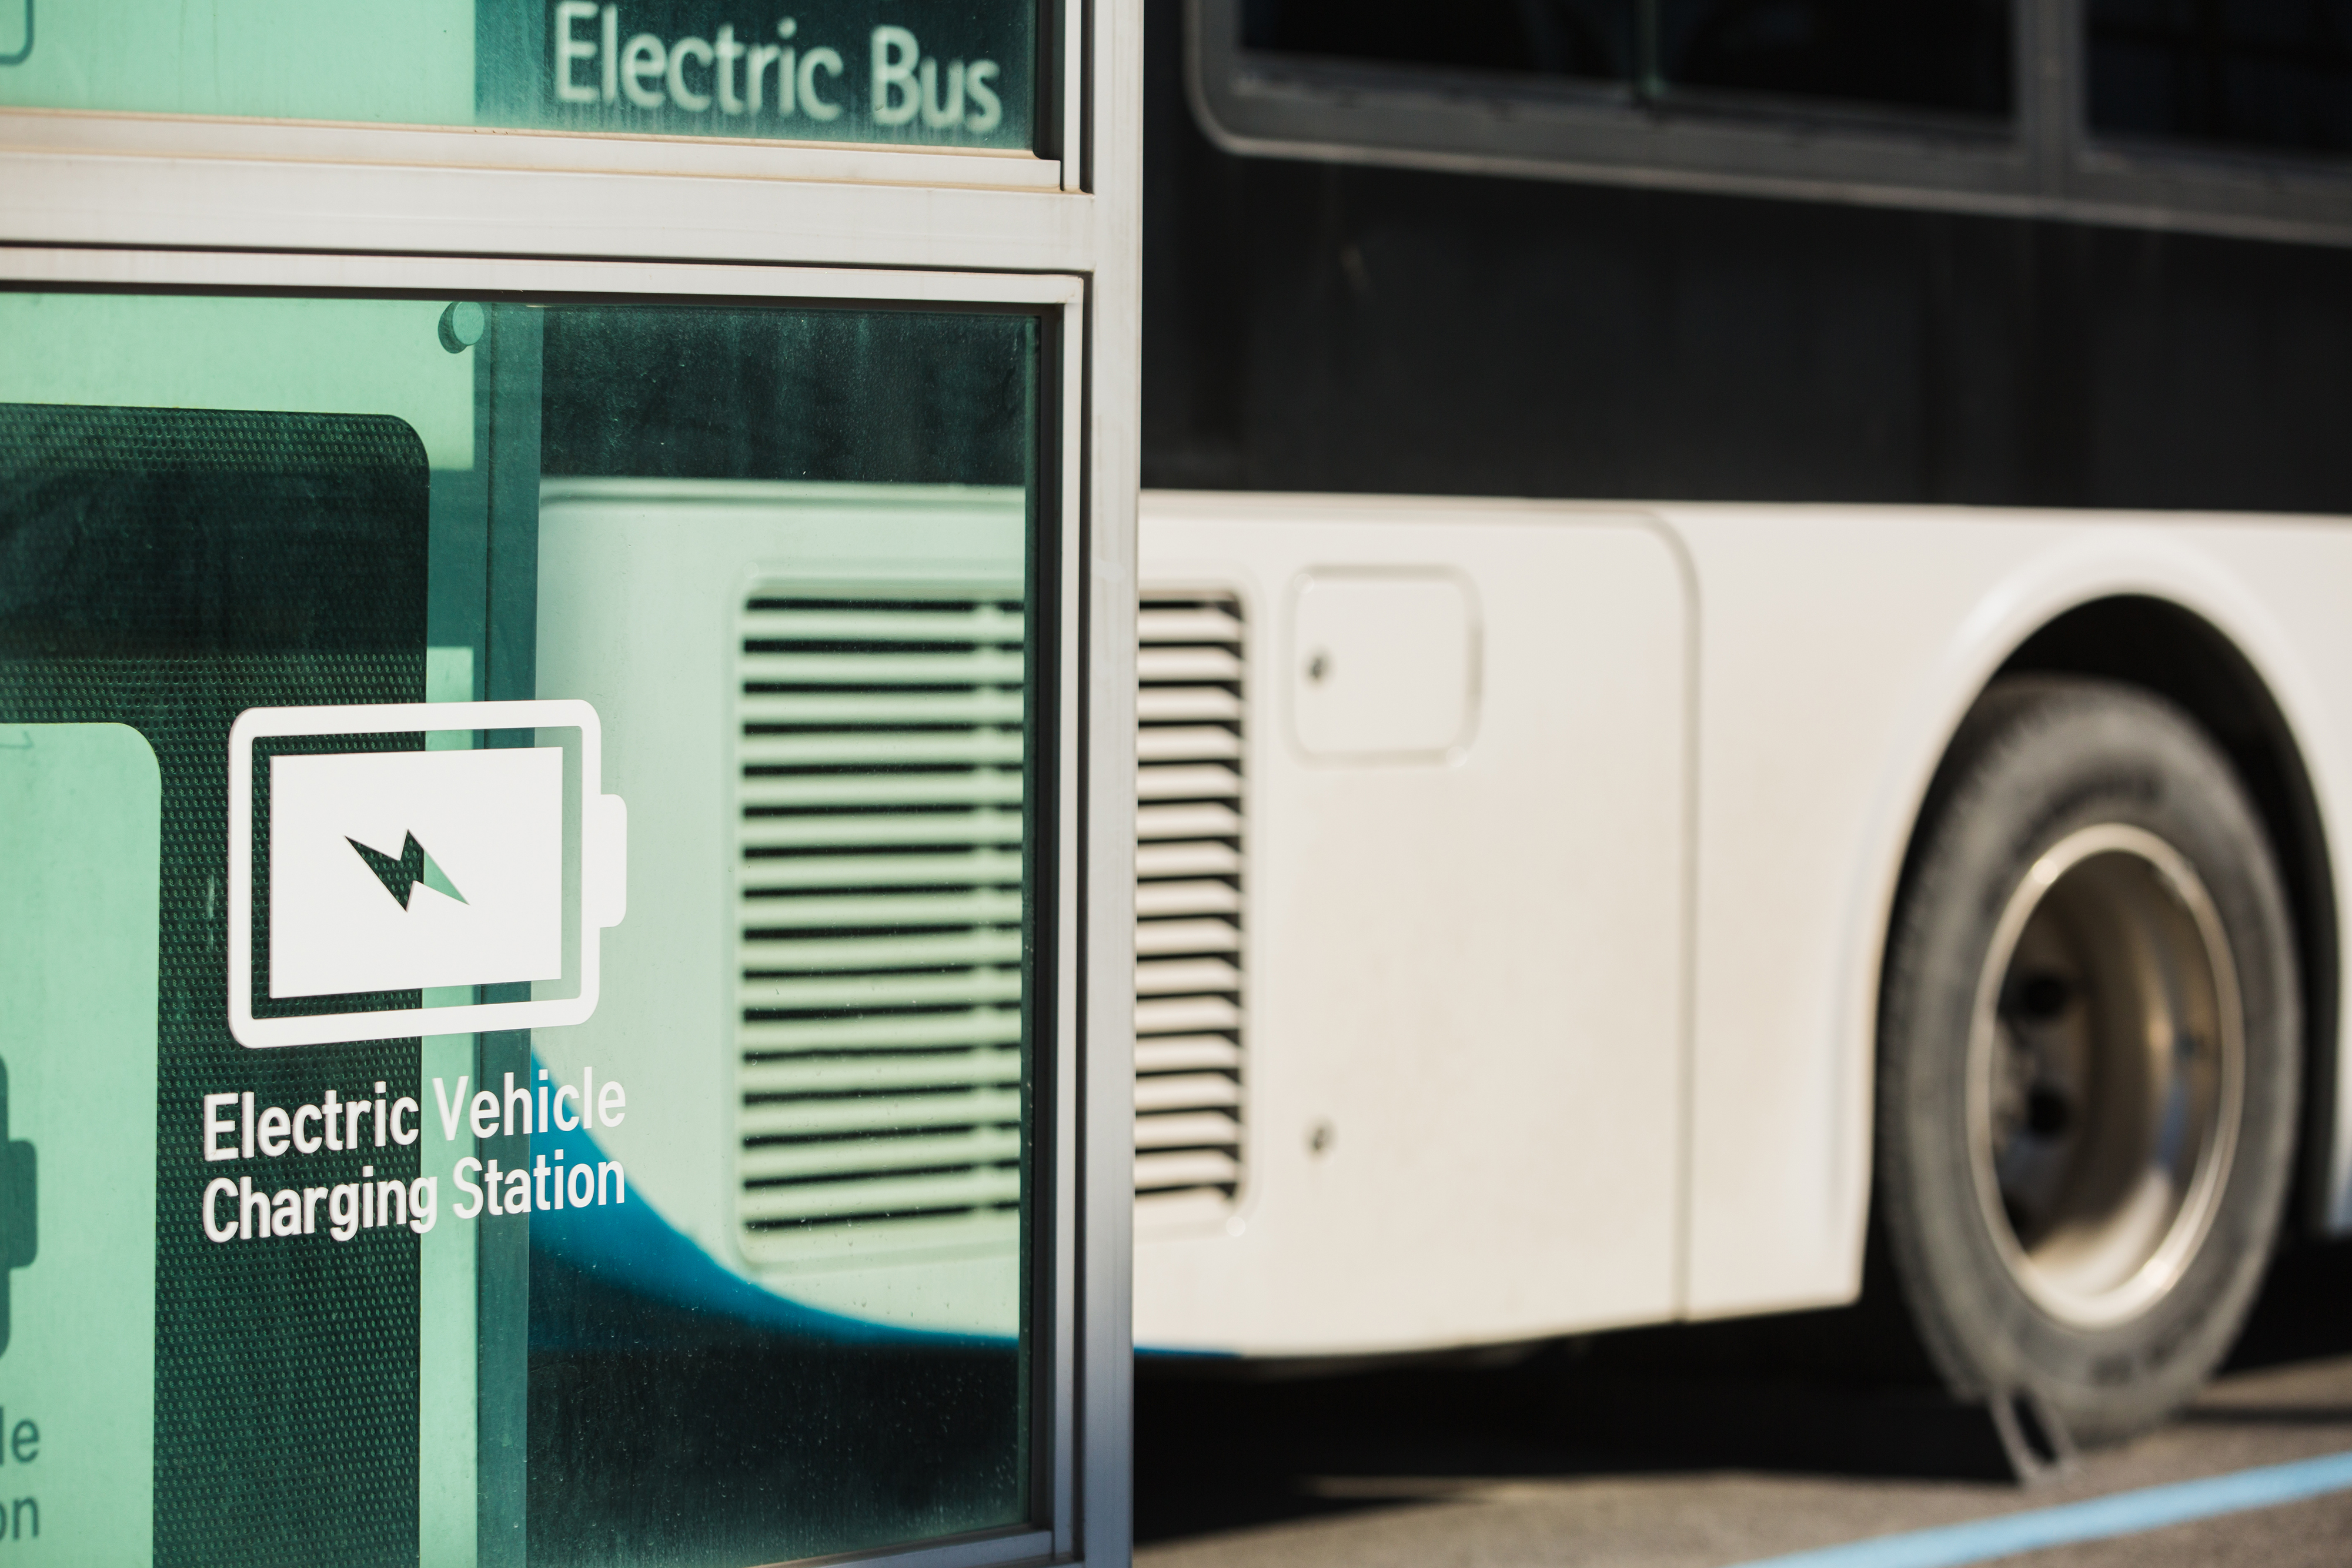 DDOT and SMART awarded $2.6 million in federal grants for electric buses